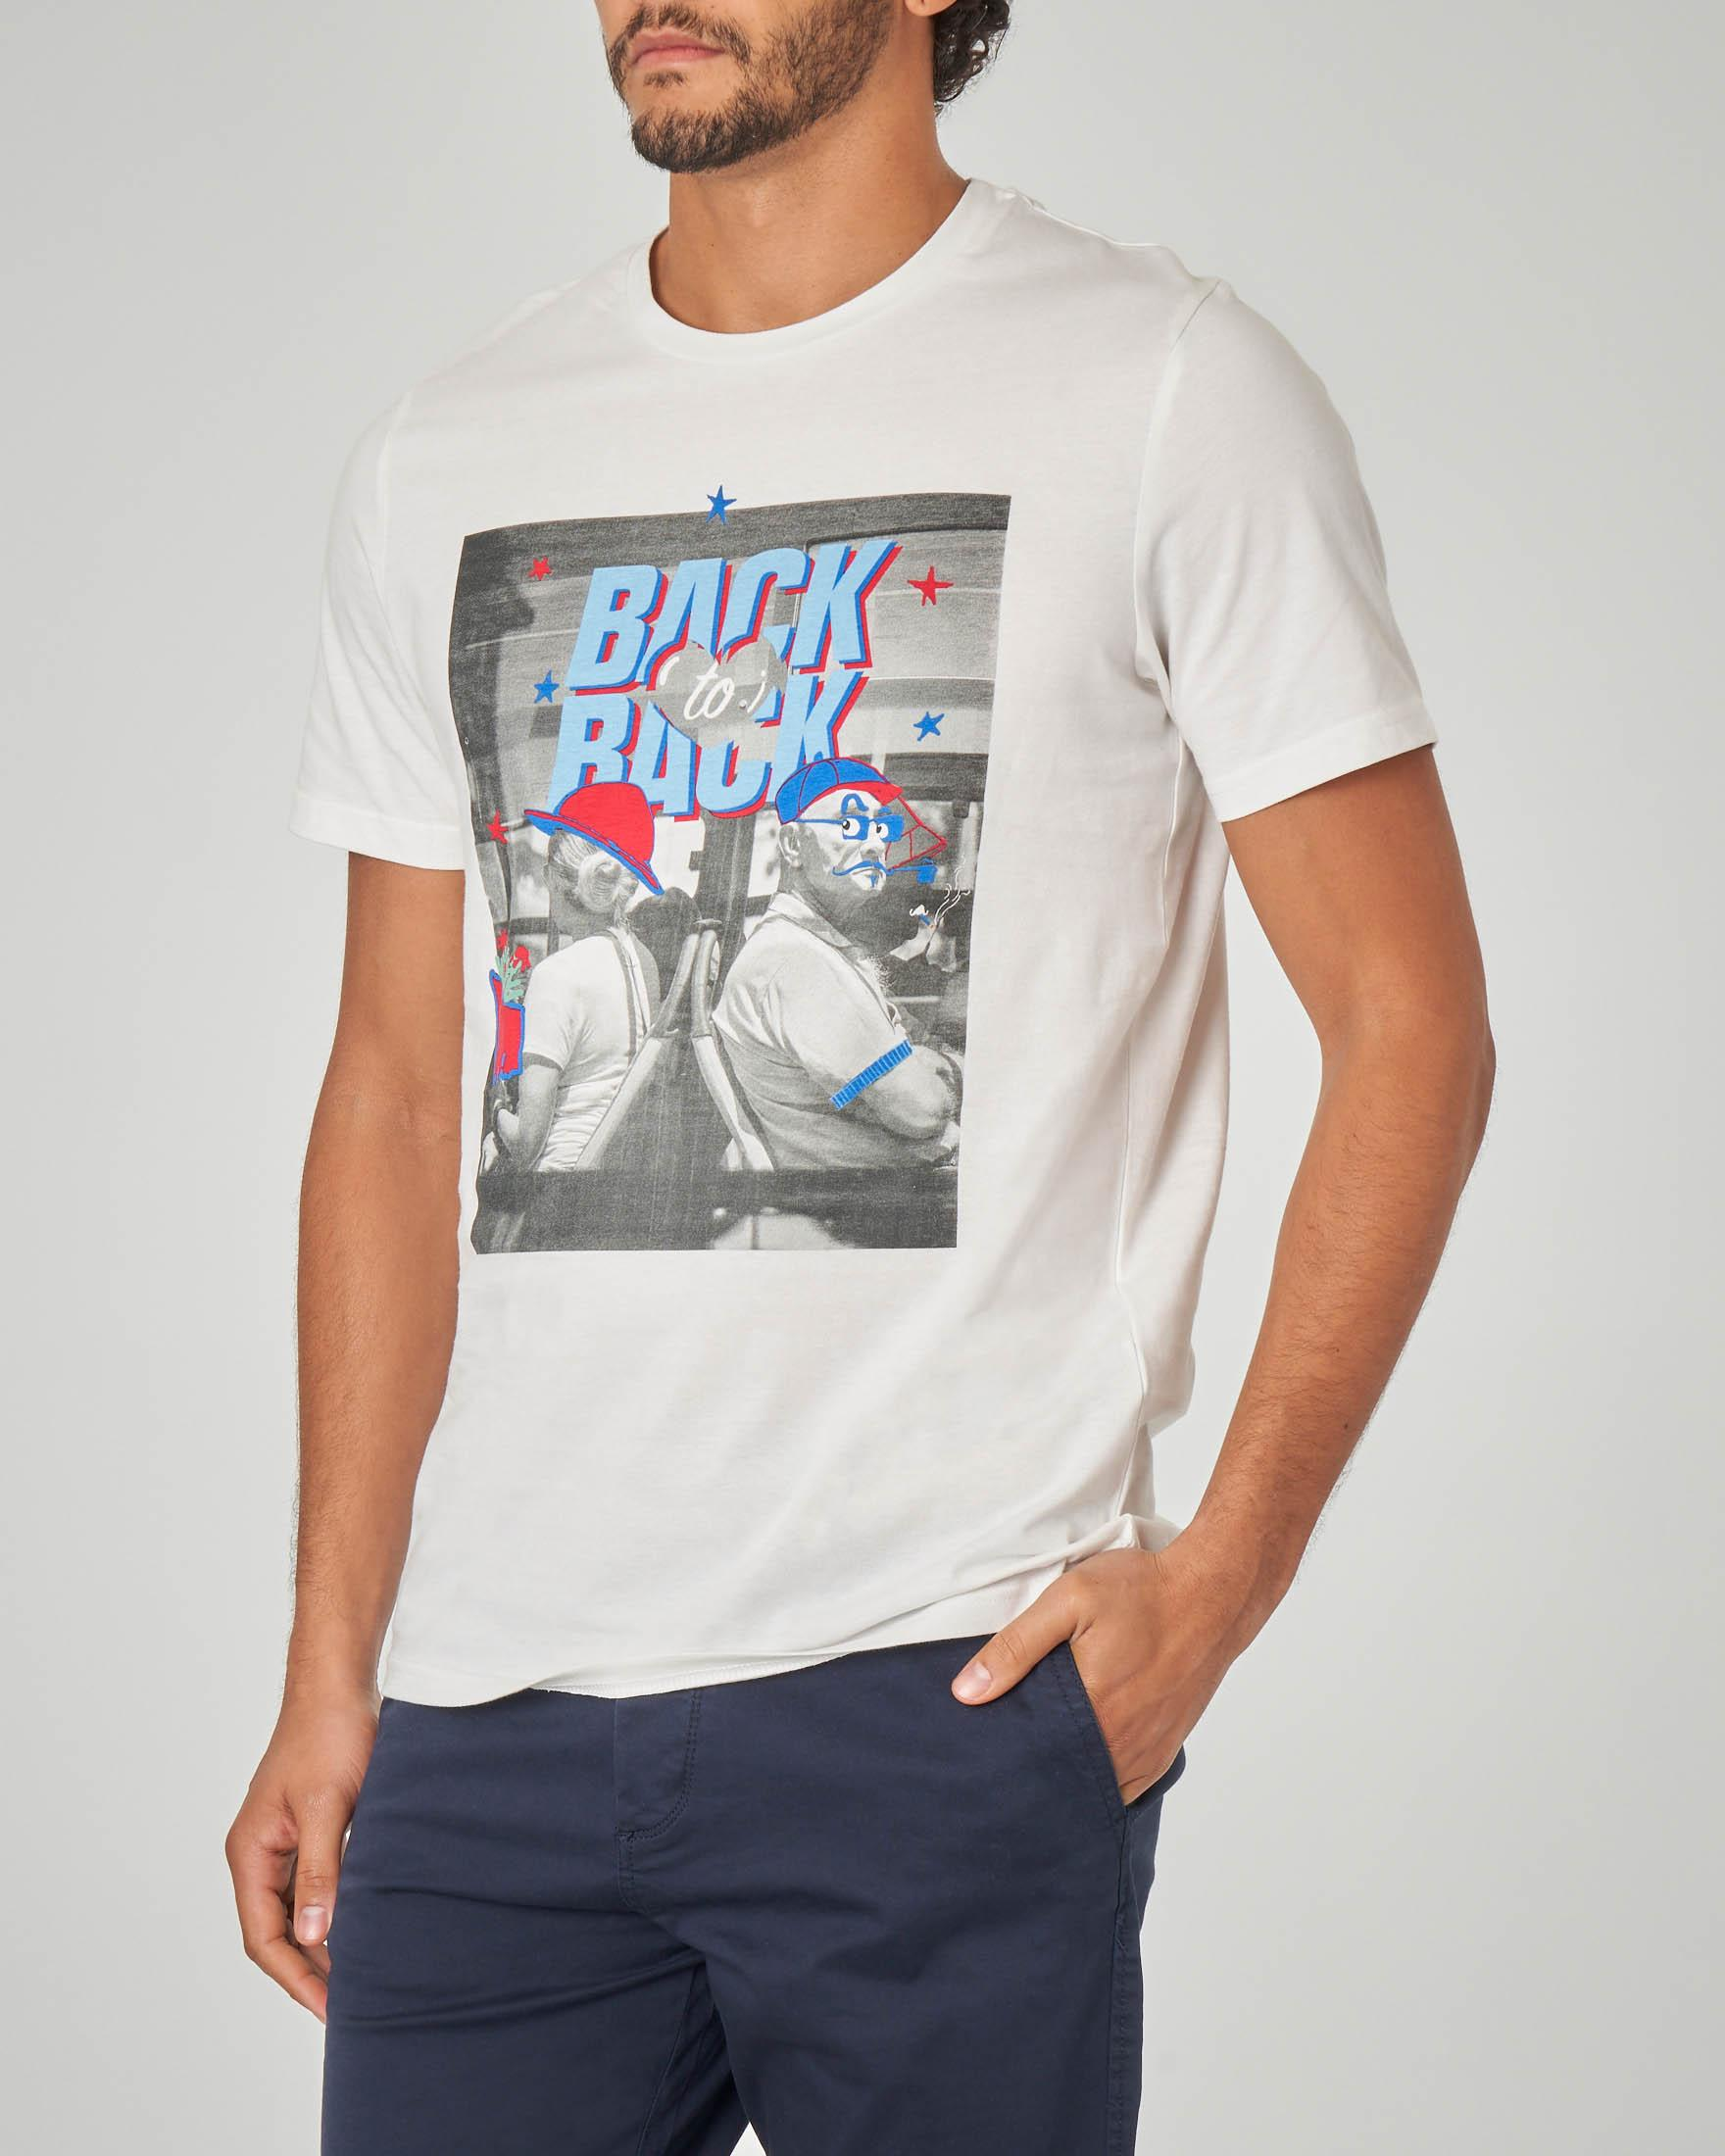 T-shirt bianca con stampa pop art